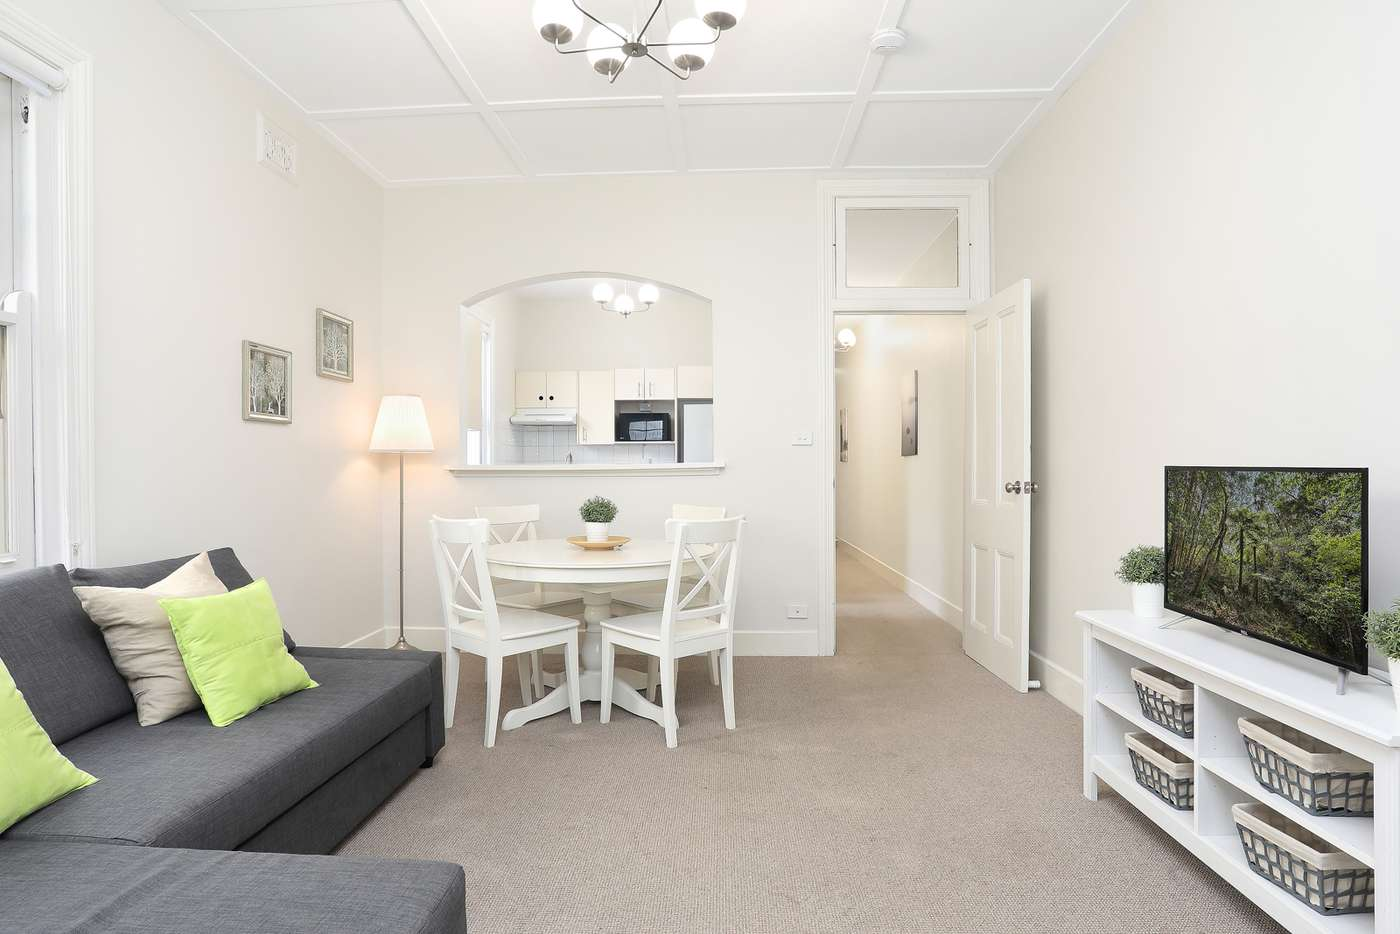 Main view of Homely apartment listing, 18-20a High Street, Sydney NSW 2000